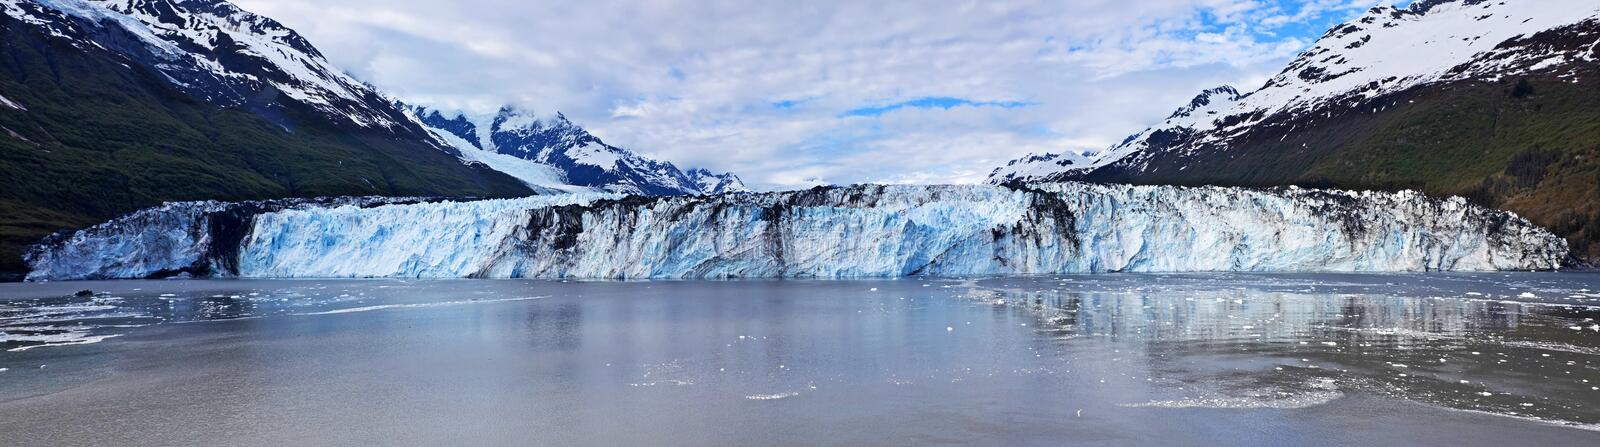 Immense glacier de Harvard photographie stock libre de droits